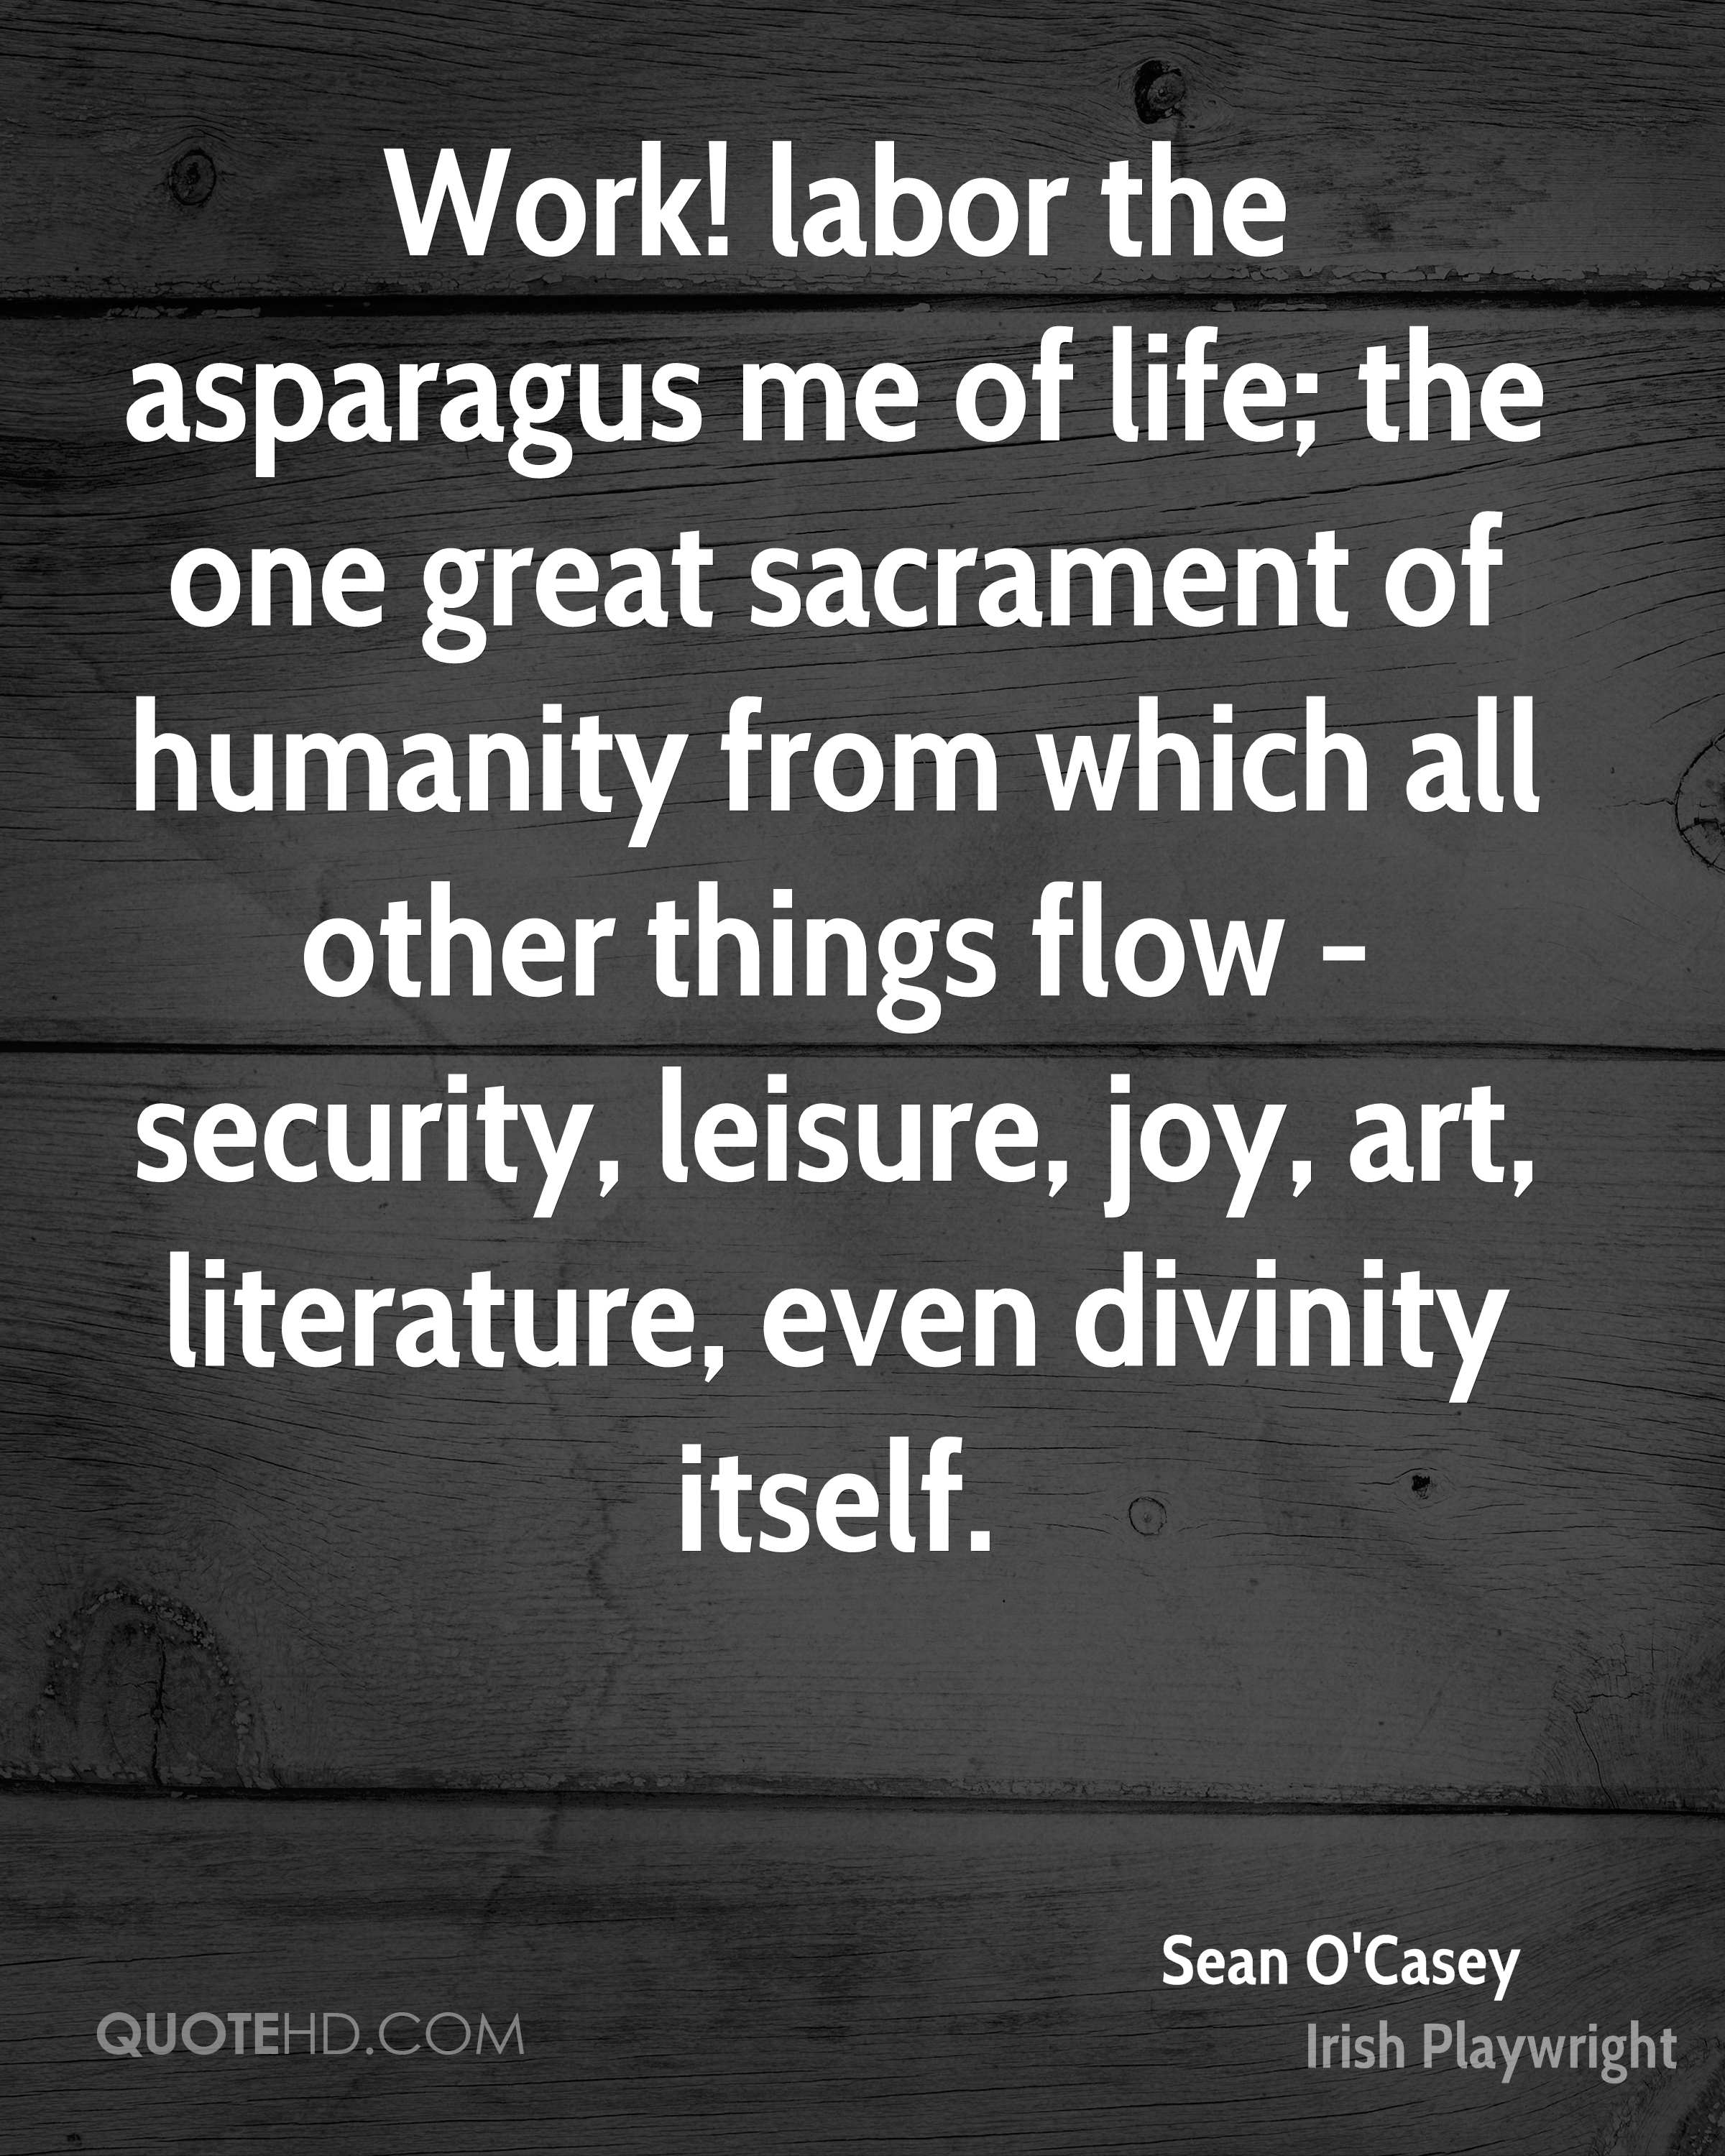 Work! labor the asparagus me of life; the one great sacrament of humanity from which all other things flow - security, leisure, joy, art, literature, even divinity itself.